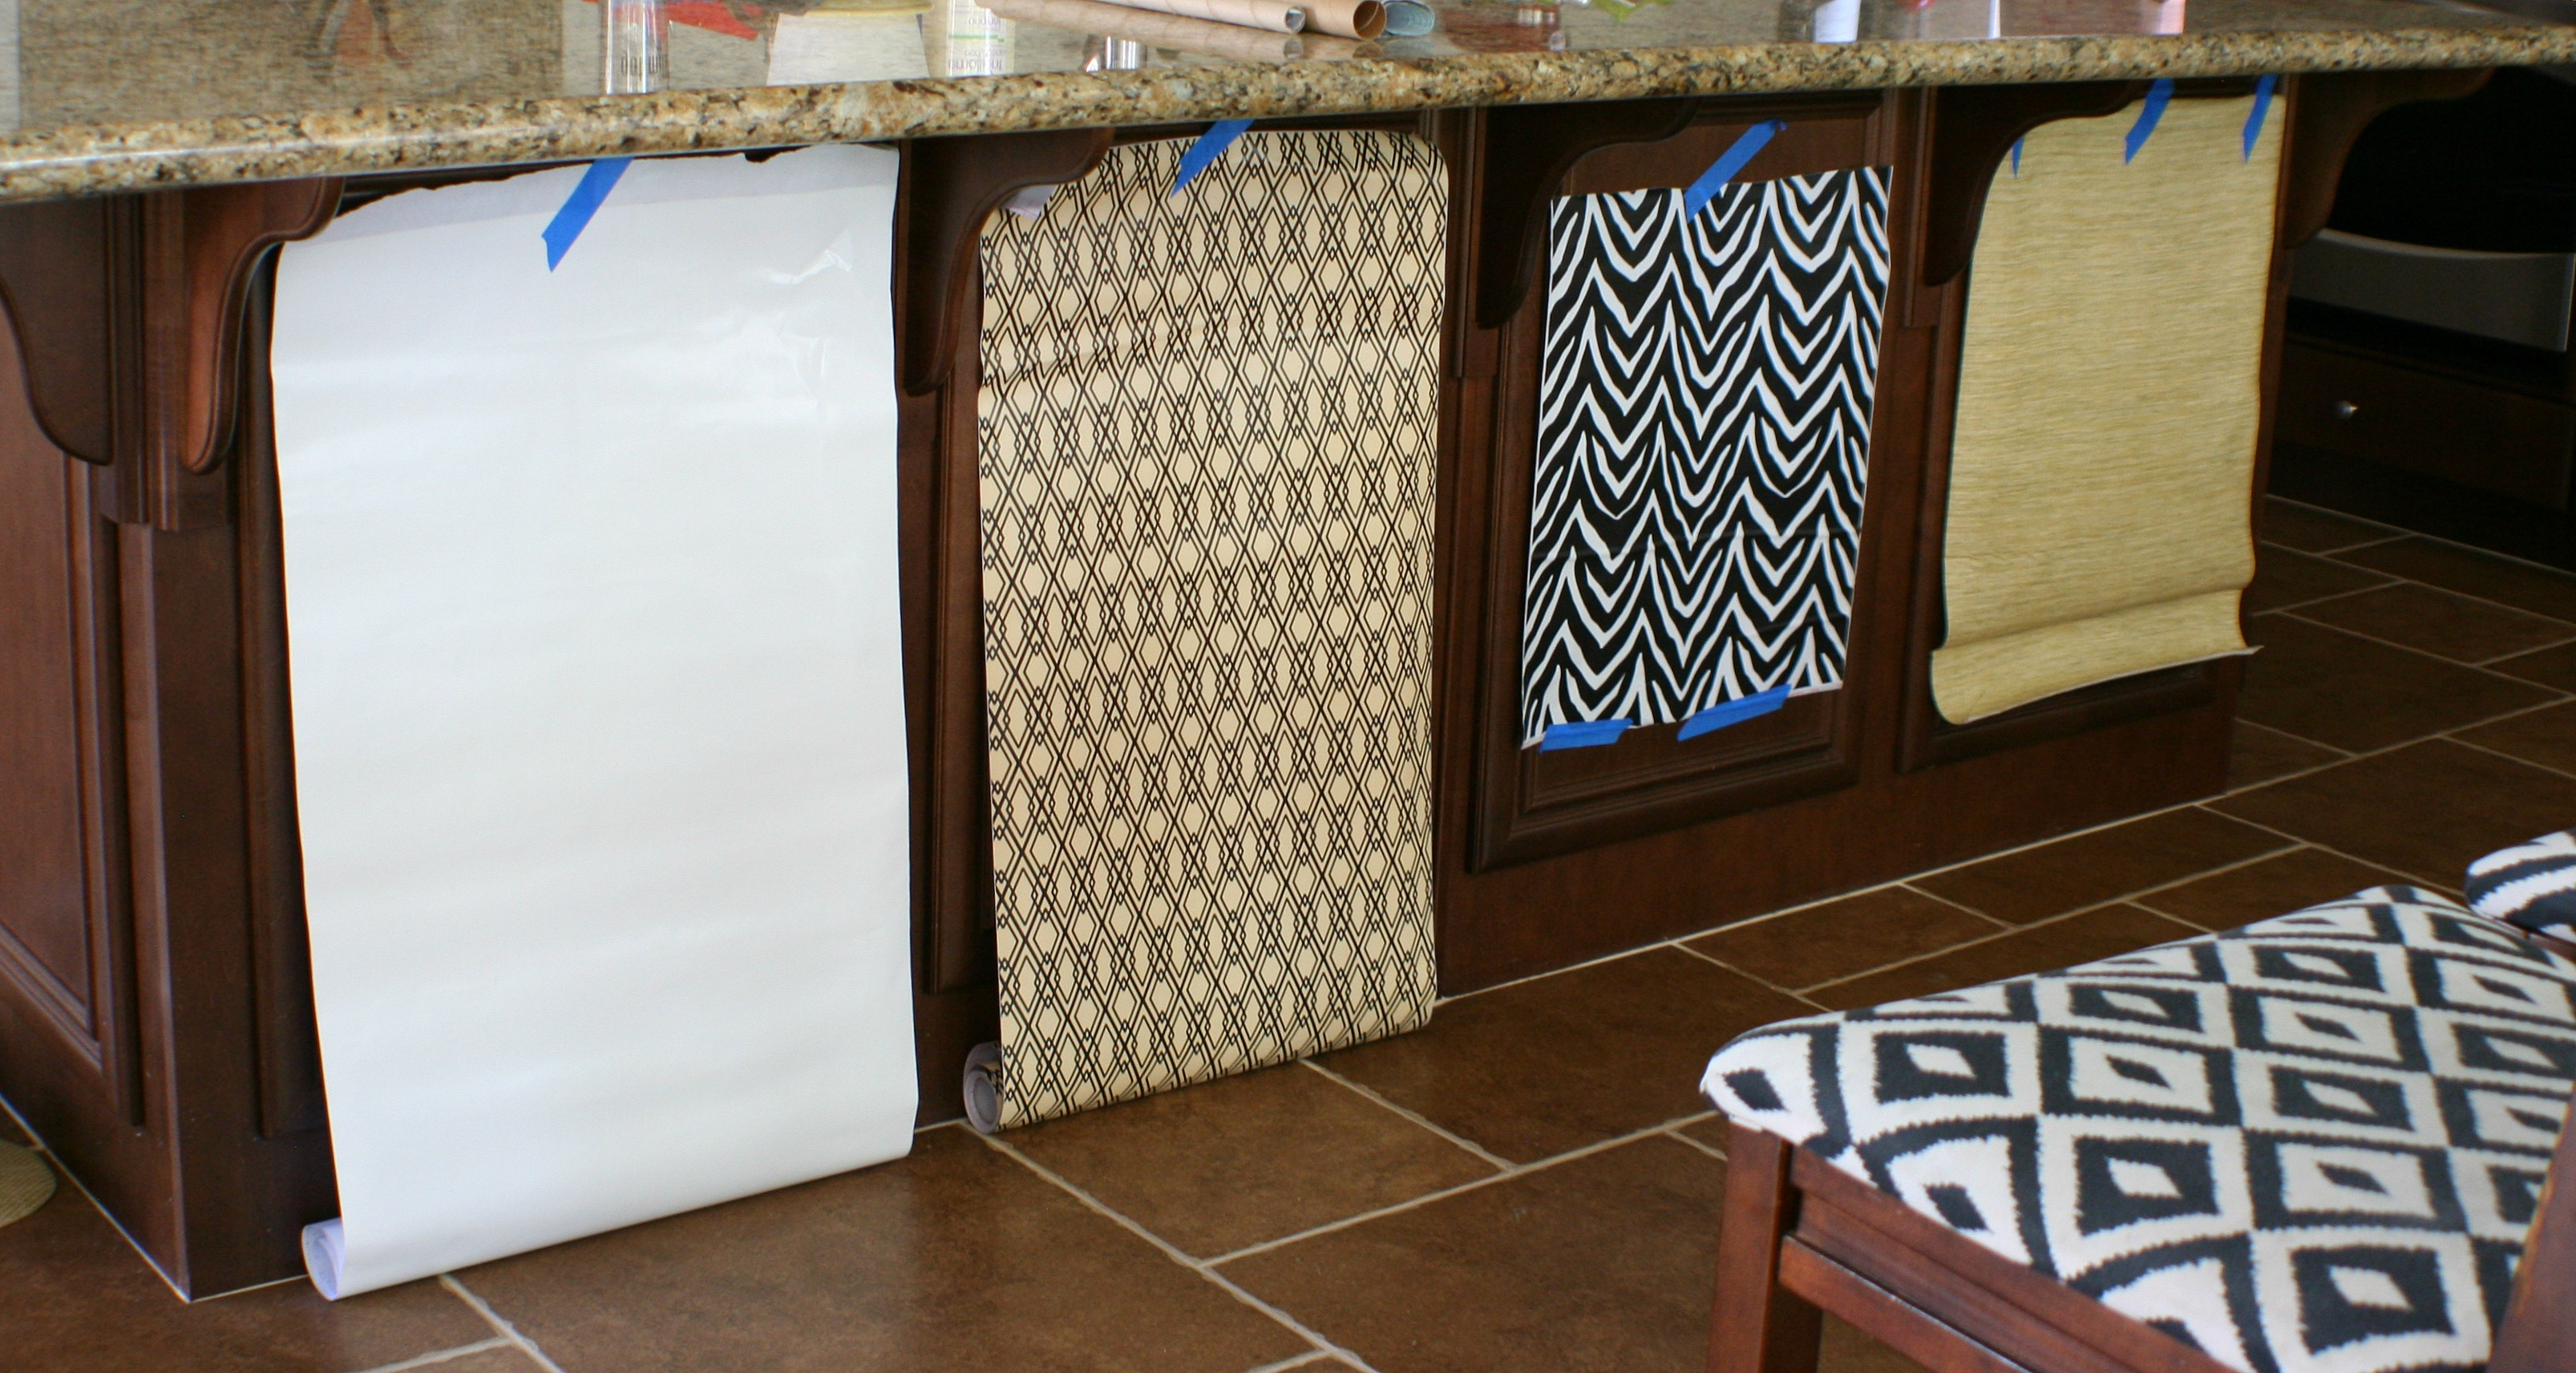 Using contact paper on our kitchen island amy krist for Vinyl paper for kitchen cabinets